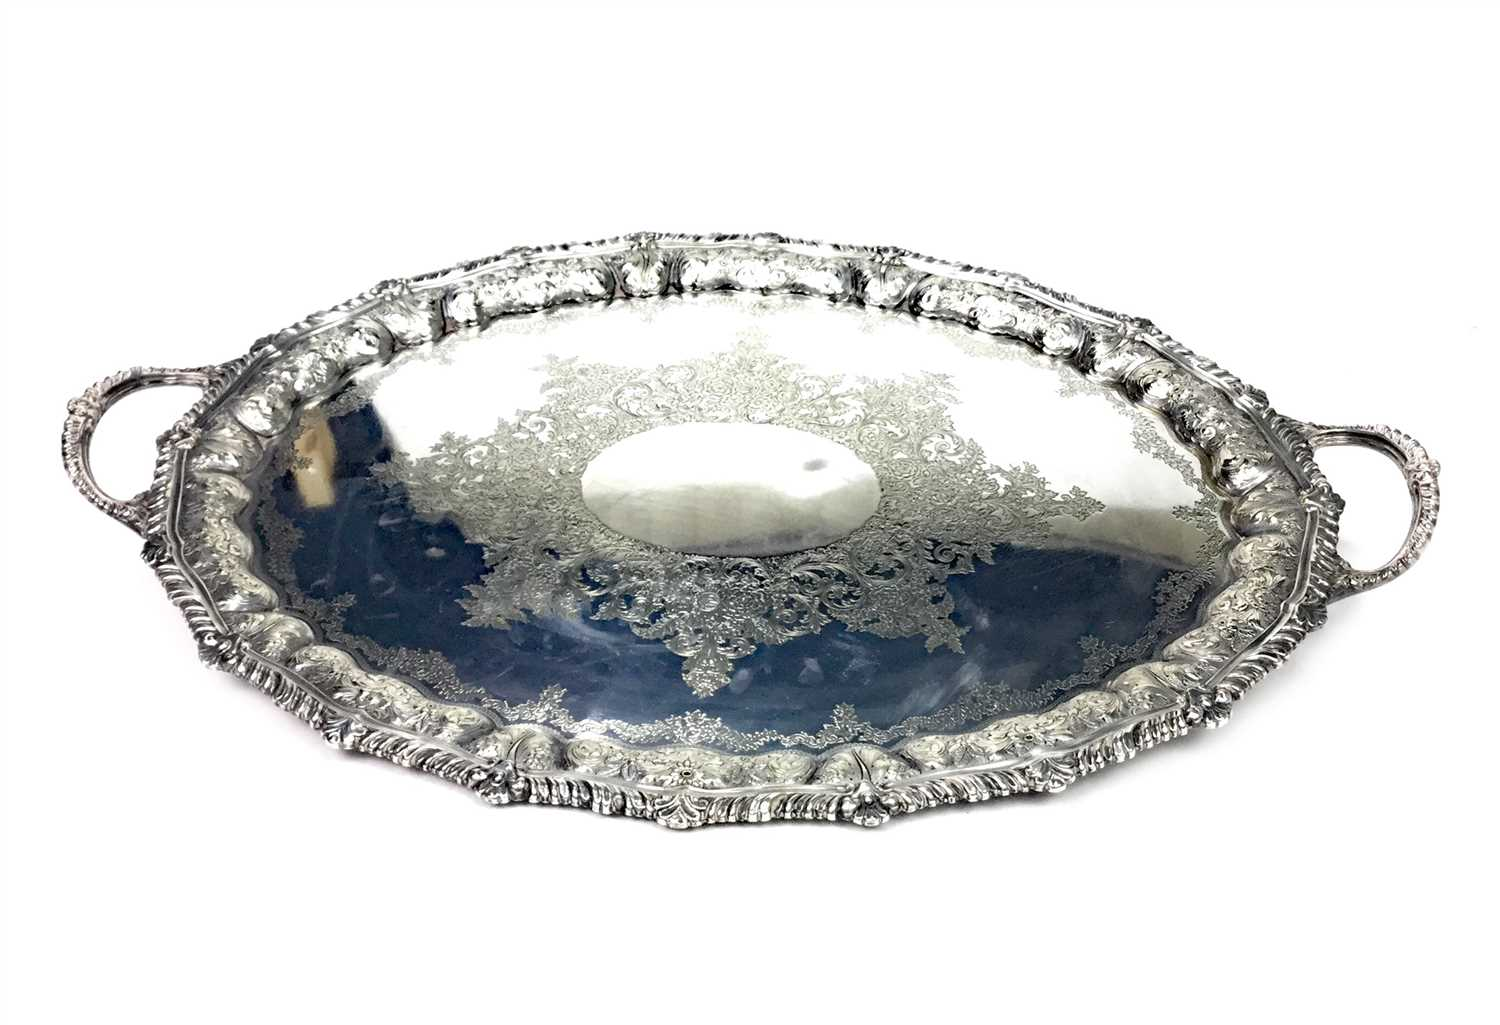 Lot 865 - A VICTORIAN SILVER PLATED DOUBLE HANDLED TRAY